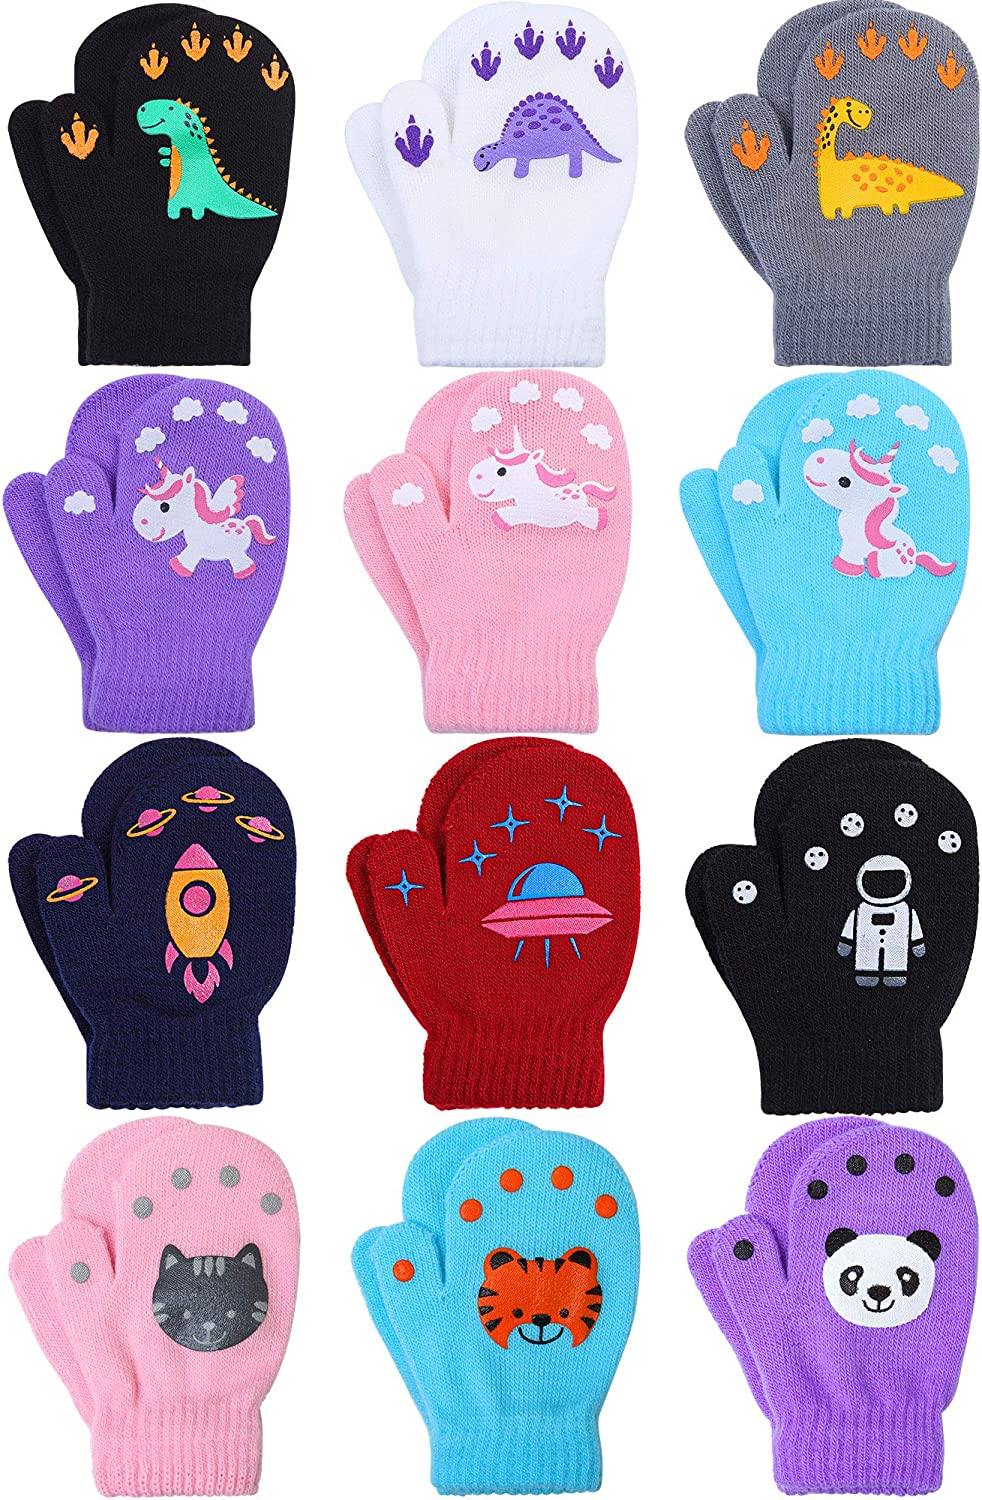 Cooraby 12 Pairs Toddler Baby Knitted Mittens Unisex Winter Warm Stretch Mittens Gloves